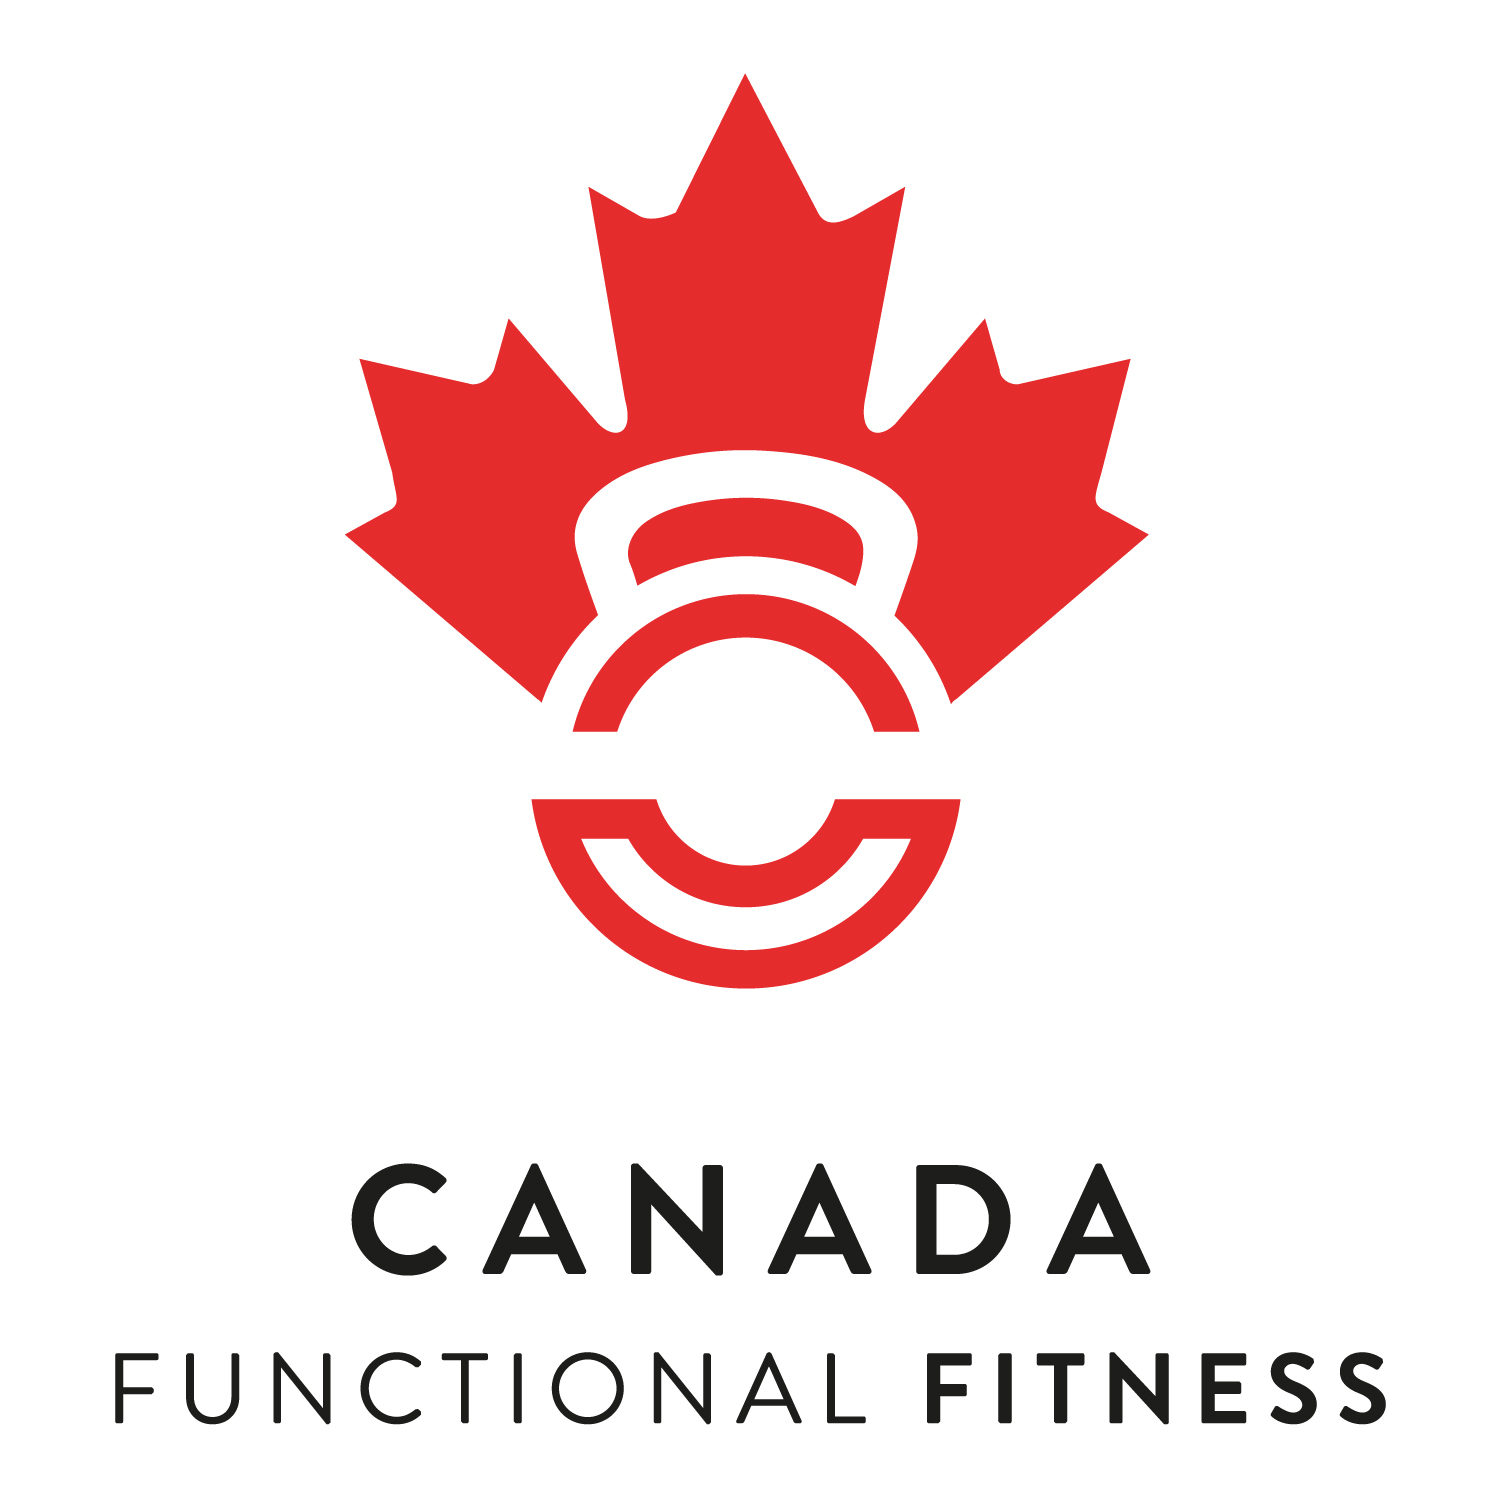 The Canadian Functional Fitness Federation is the National Governing body of the sport of Functional Fitness in Canada.